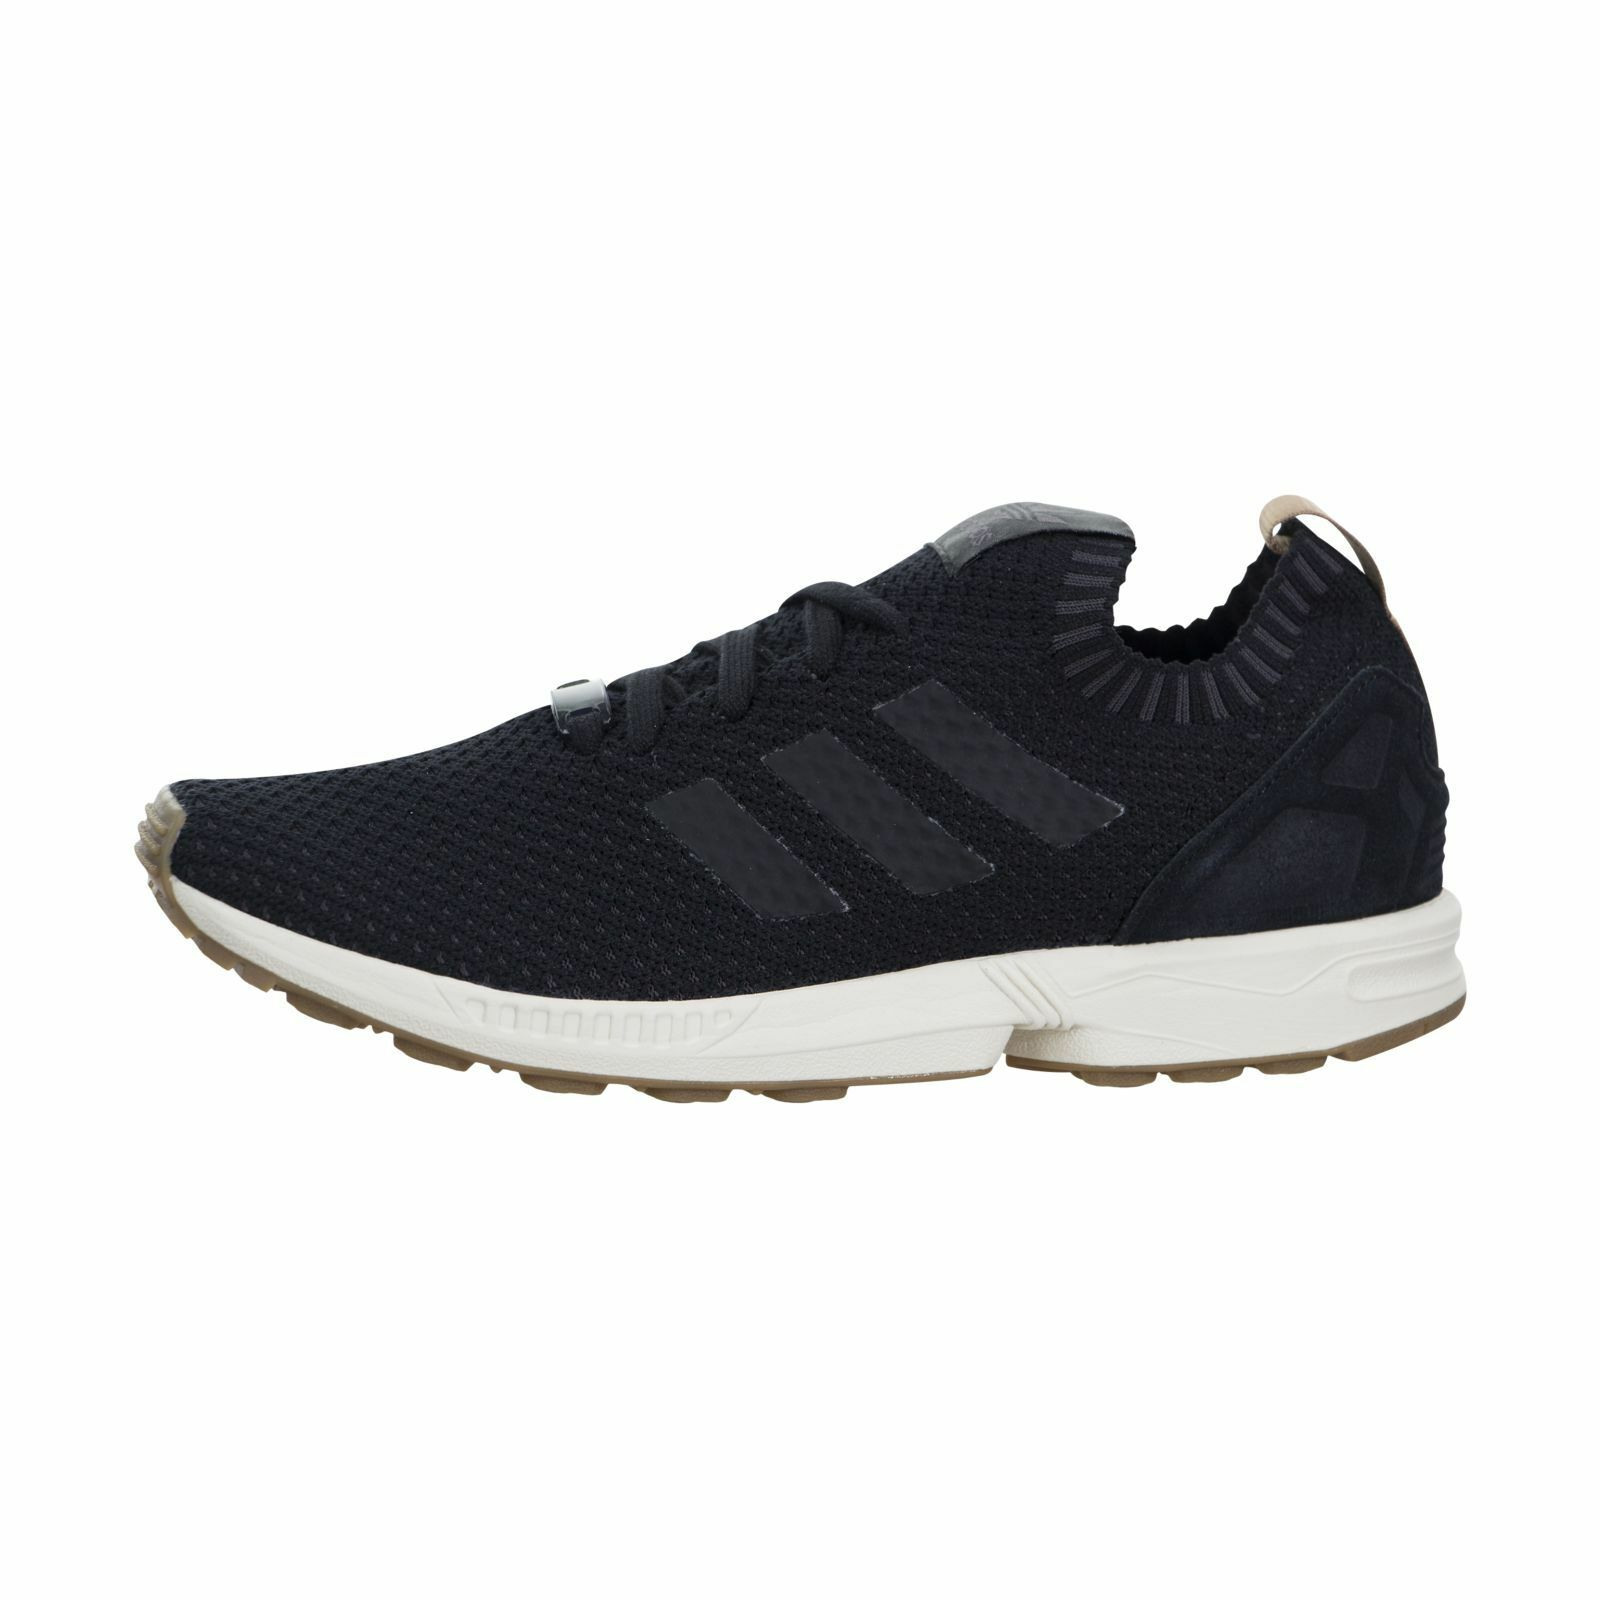 Cheap Nice Adidas ZX Flux Primeknit on the sale